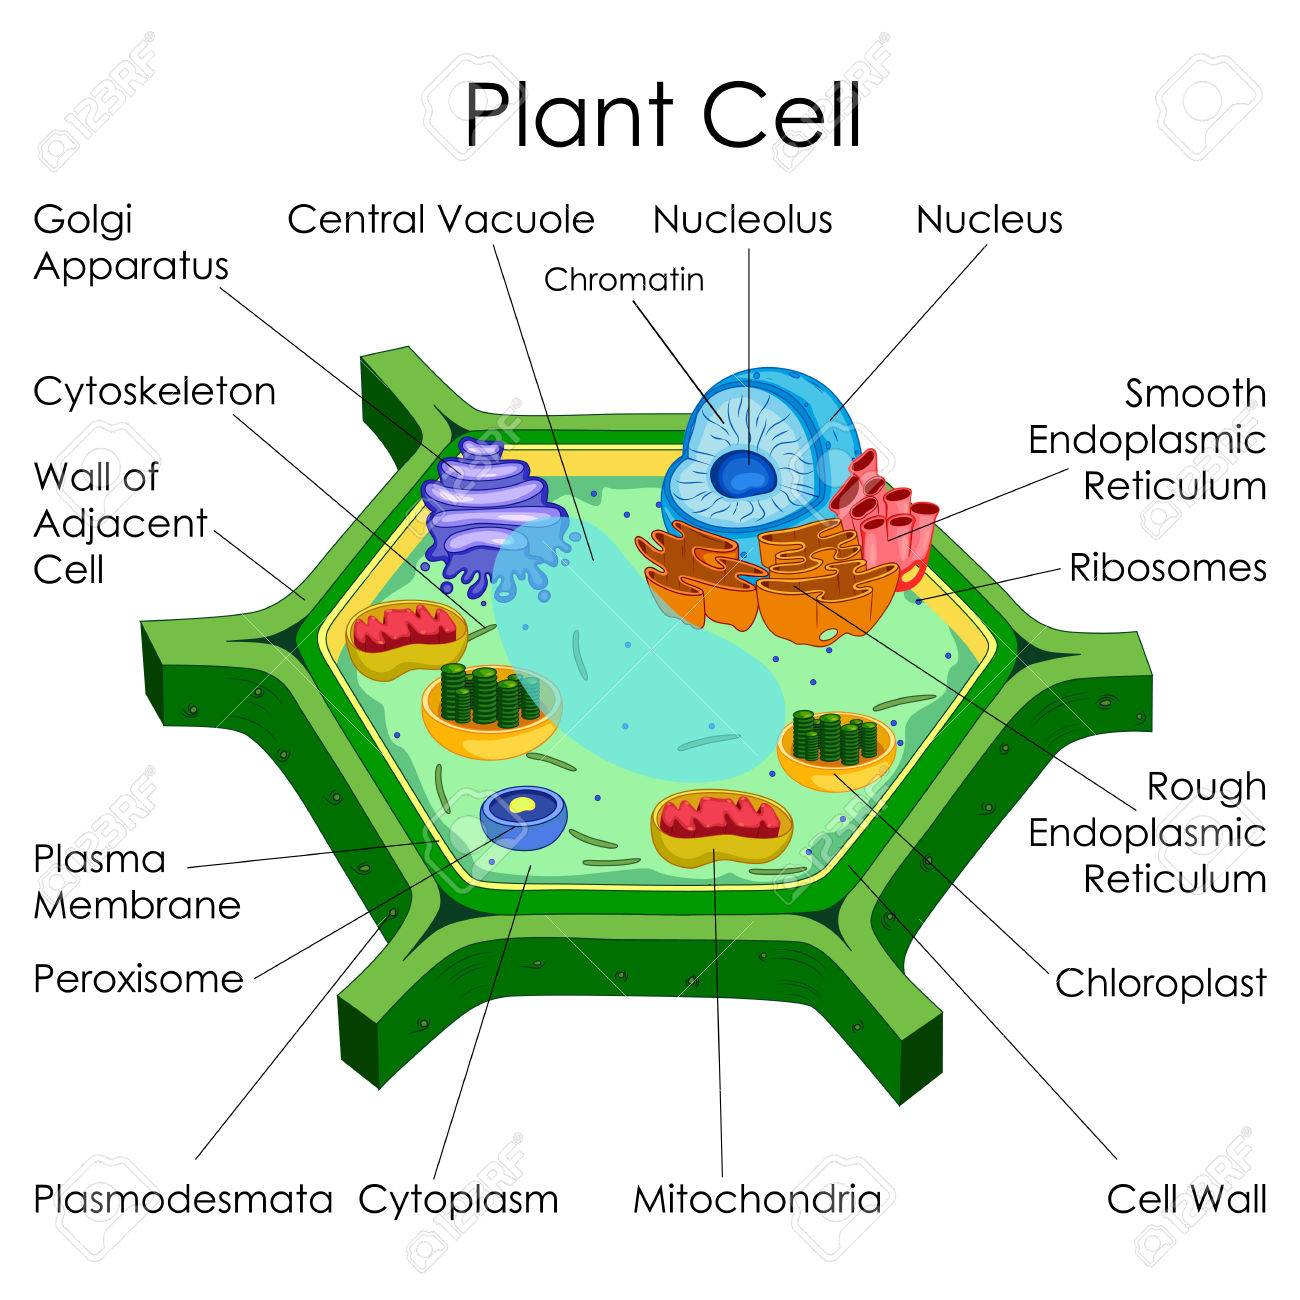 Plant cell diagram showing electrical drawing wiring diagram education chart of biology for plant cell diagram stock photo rh 123rf com plant cell diagram for class 7 plant cell diagram for class 6 ccuart Choice Image